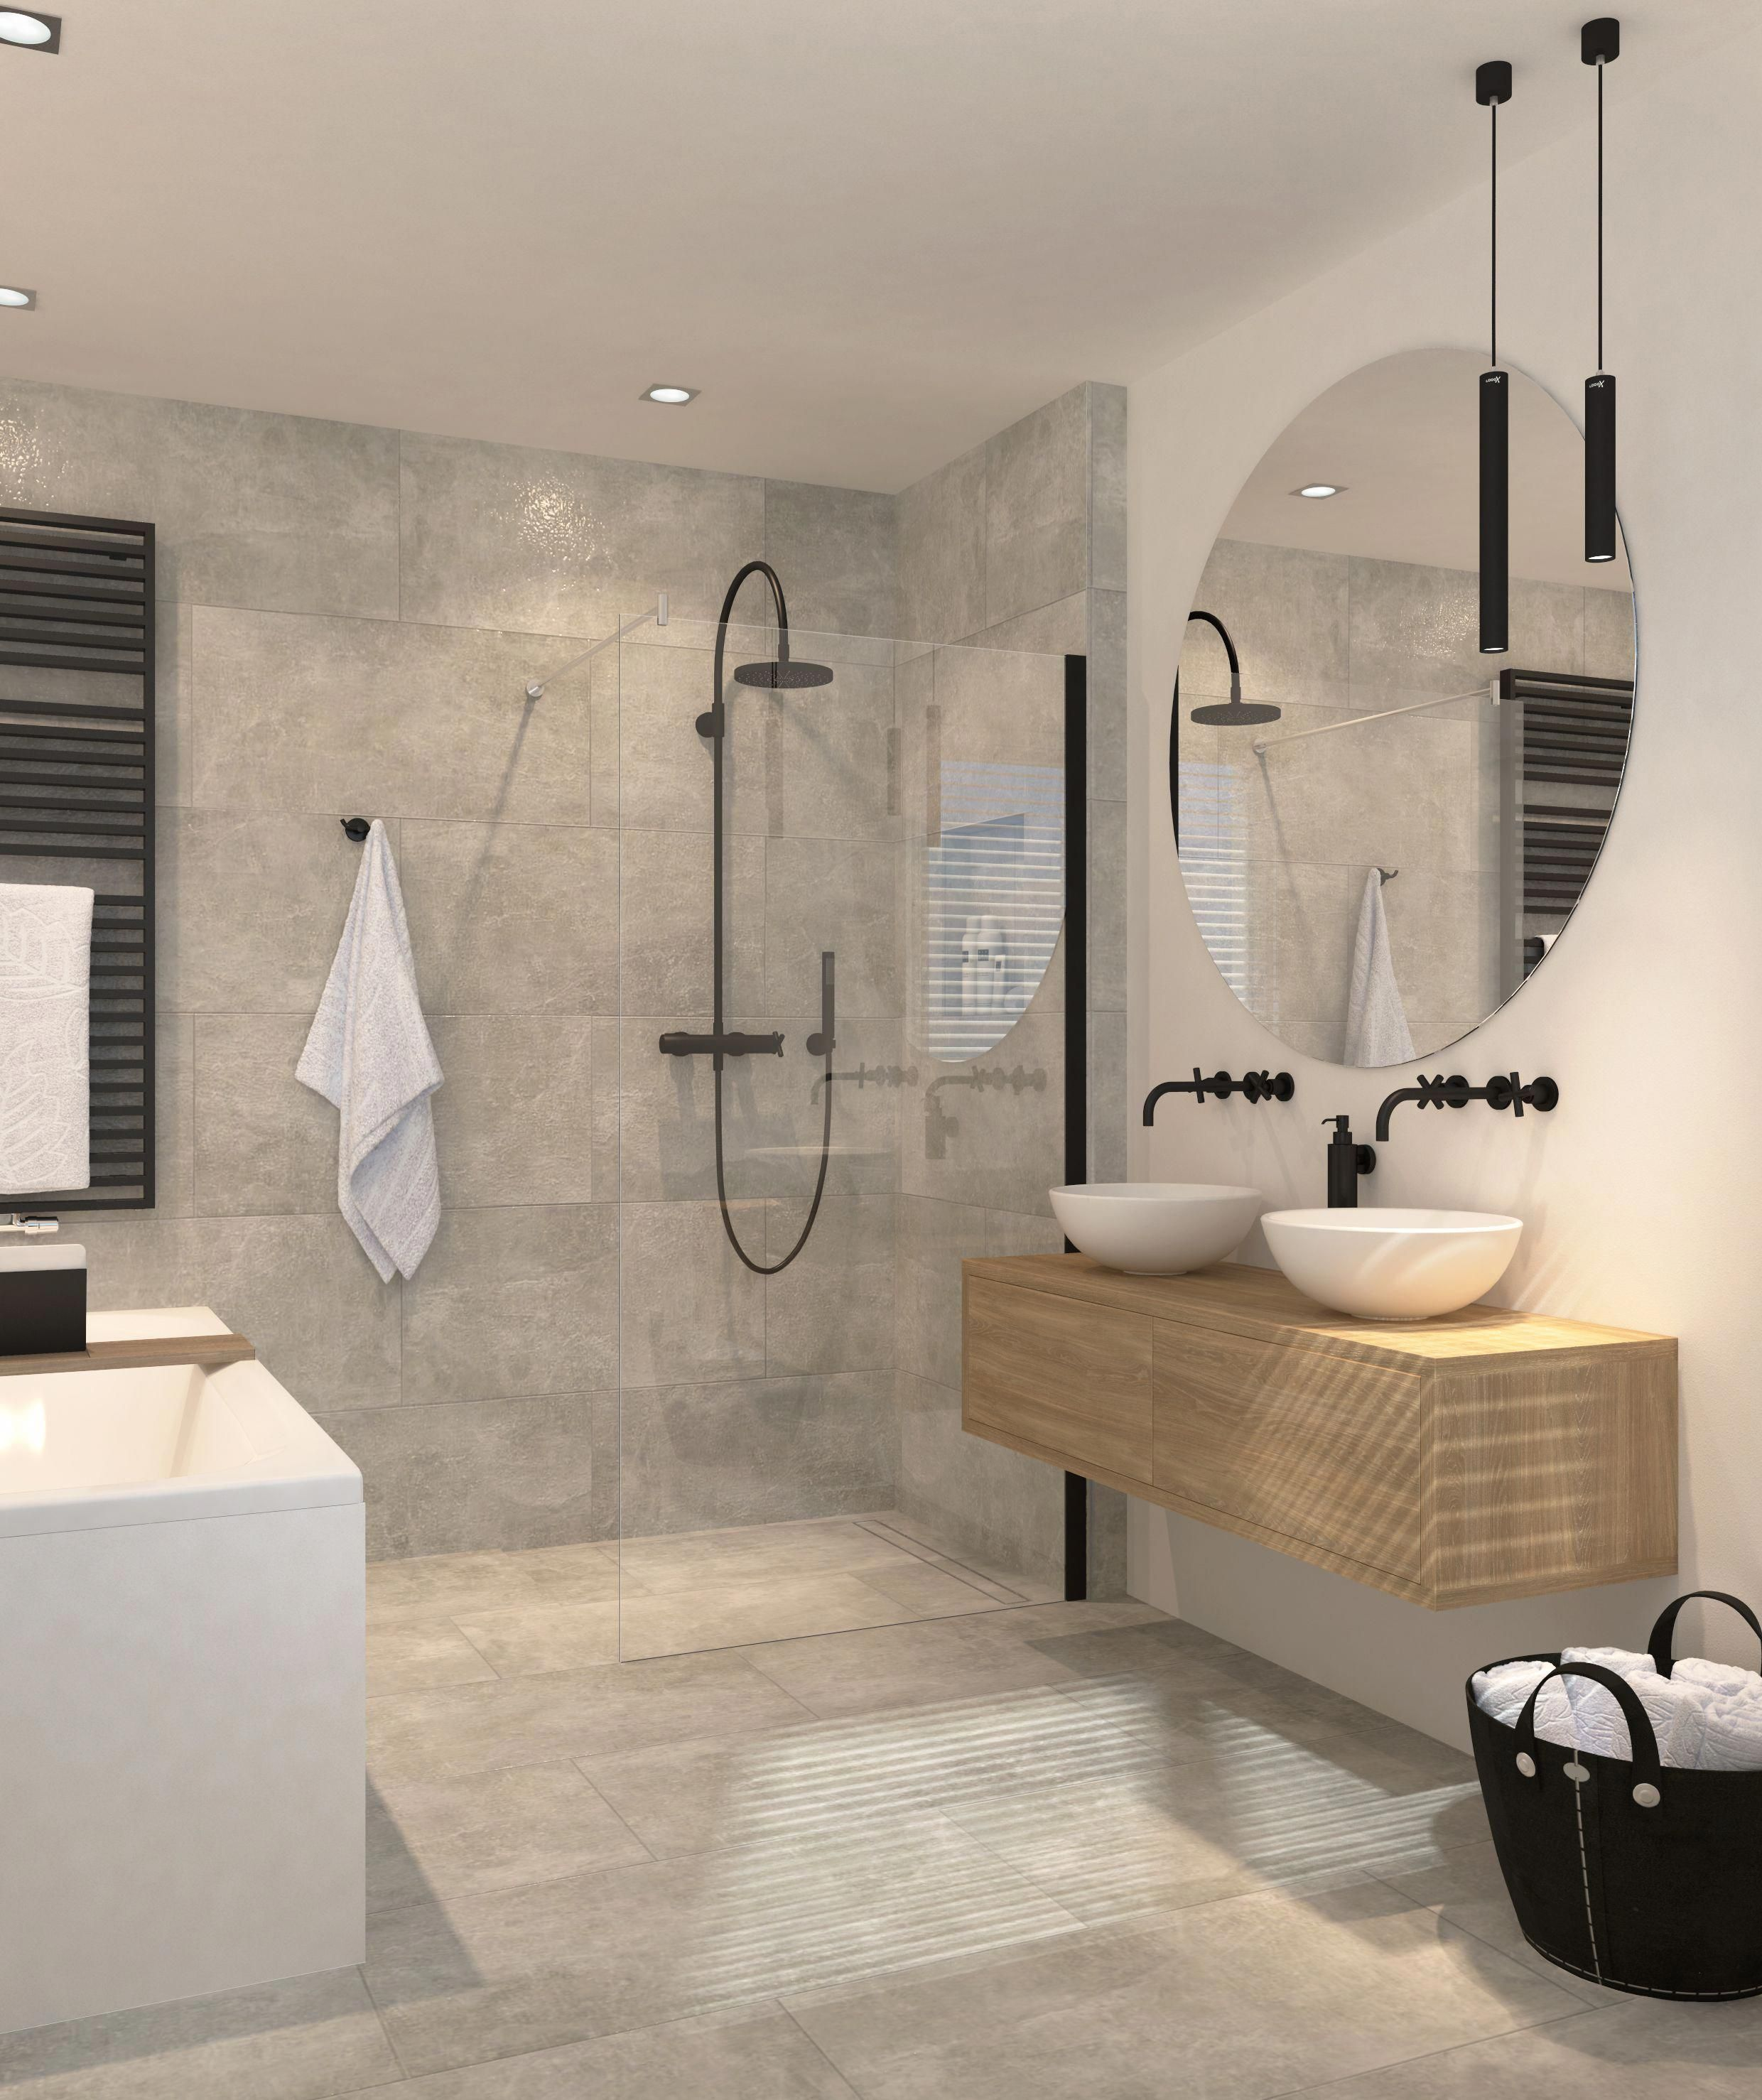 Get Inspired with 20 Luxury Black and White Bathroom Design Ideas - Very Amazing! - Best Home Ideas and Inspiration